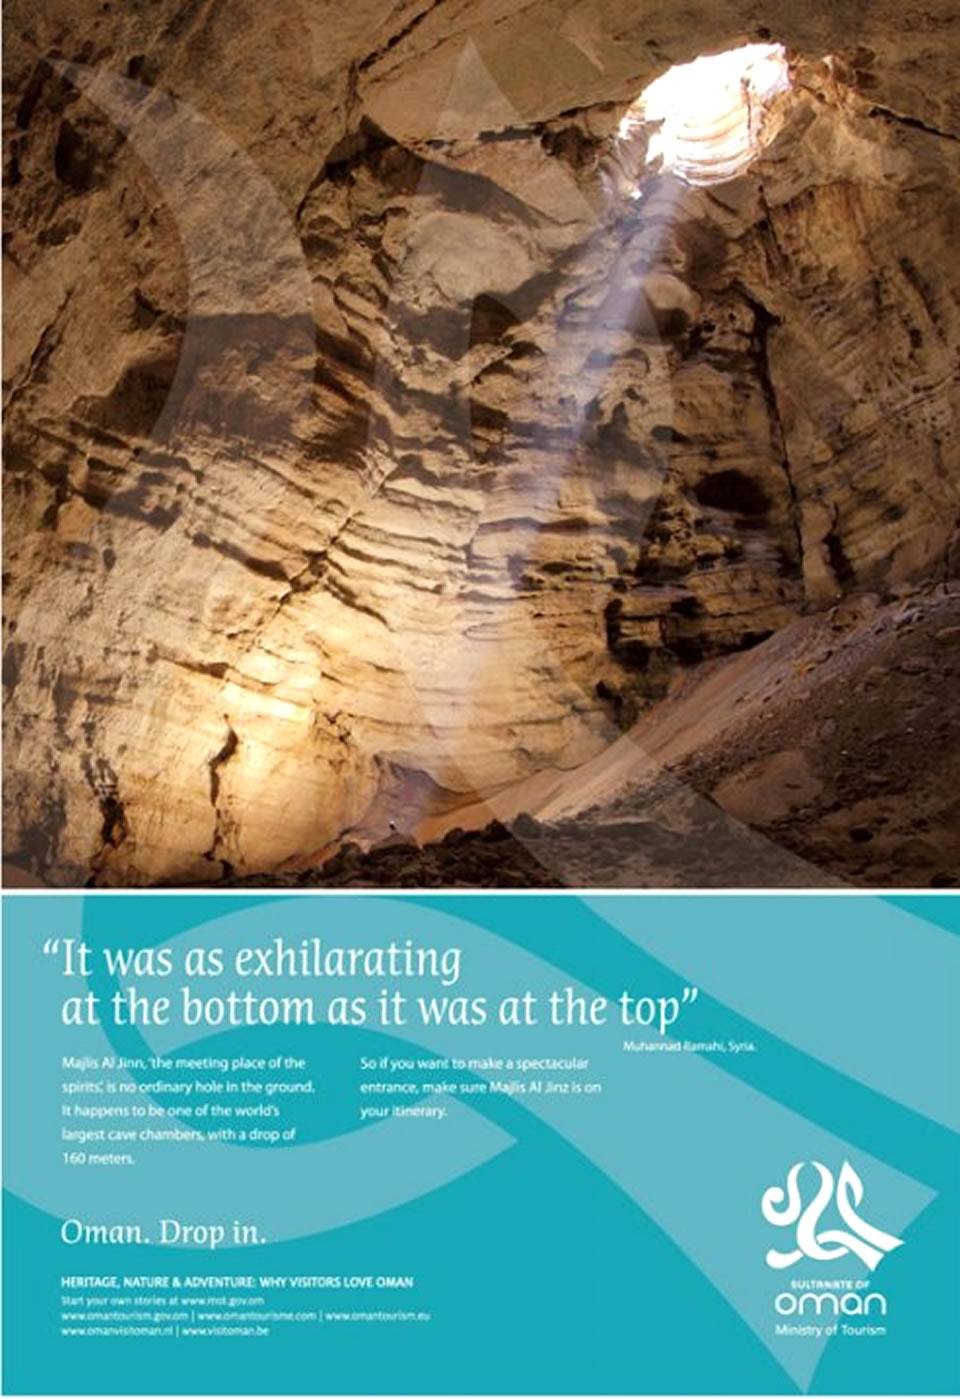 Adventure Tourism Advertisement Poster of Oman Sultanate